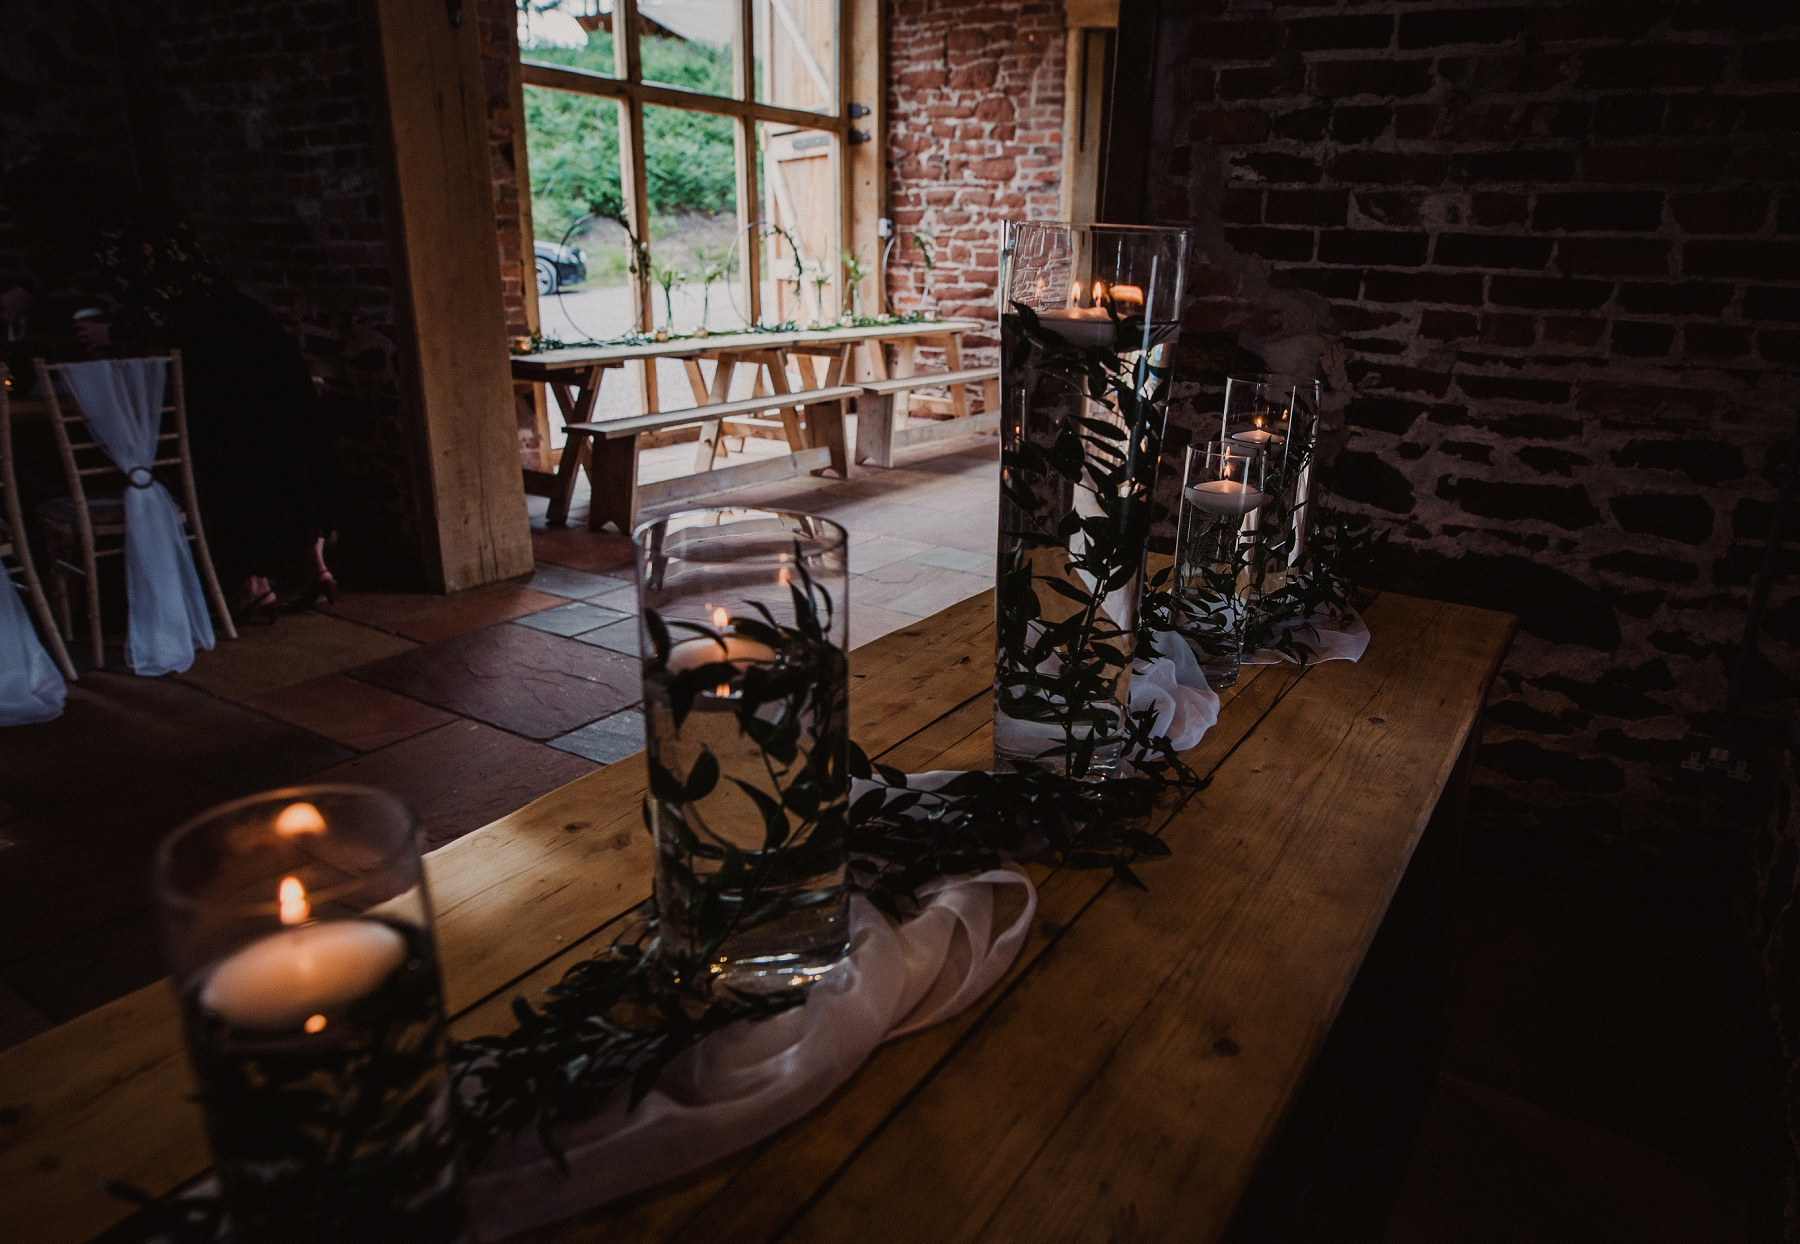 Bridal_Barn_Open_Evening_June2019 (63).jpg